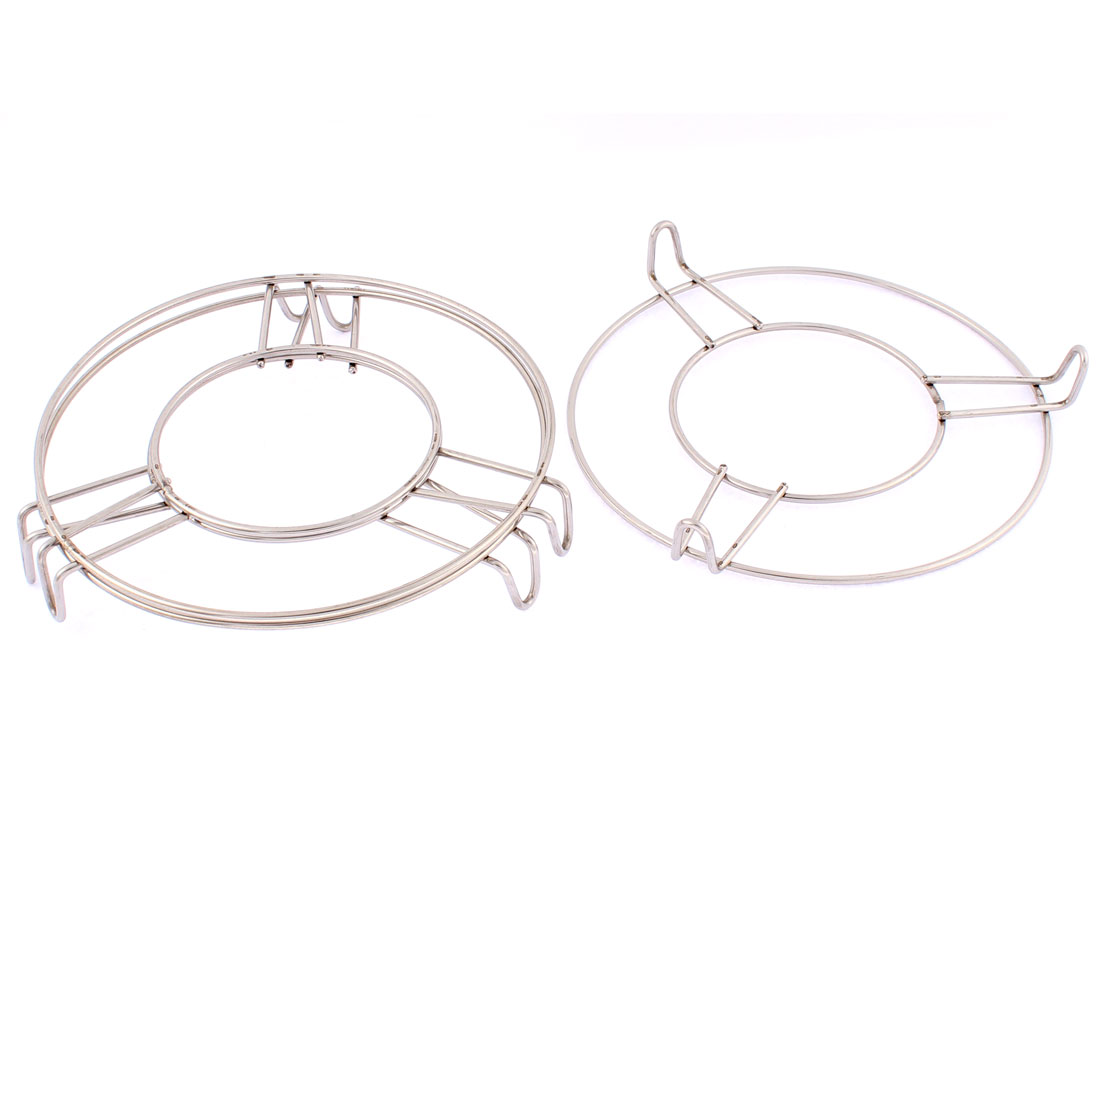 Stainless Steel Round Steaming Rack Stand 6 Inch x 1 Inch 3 Pcs